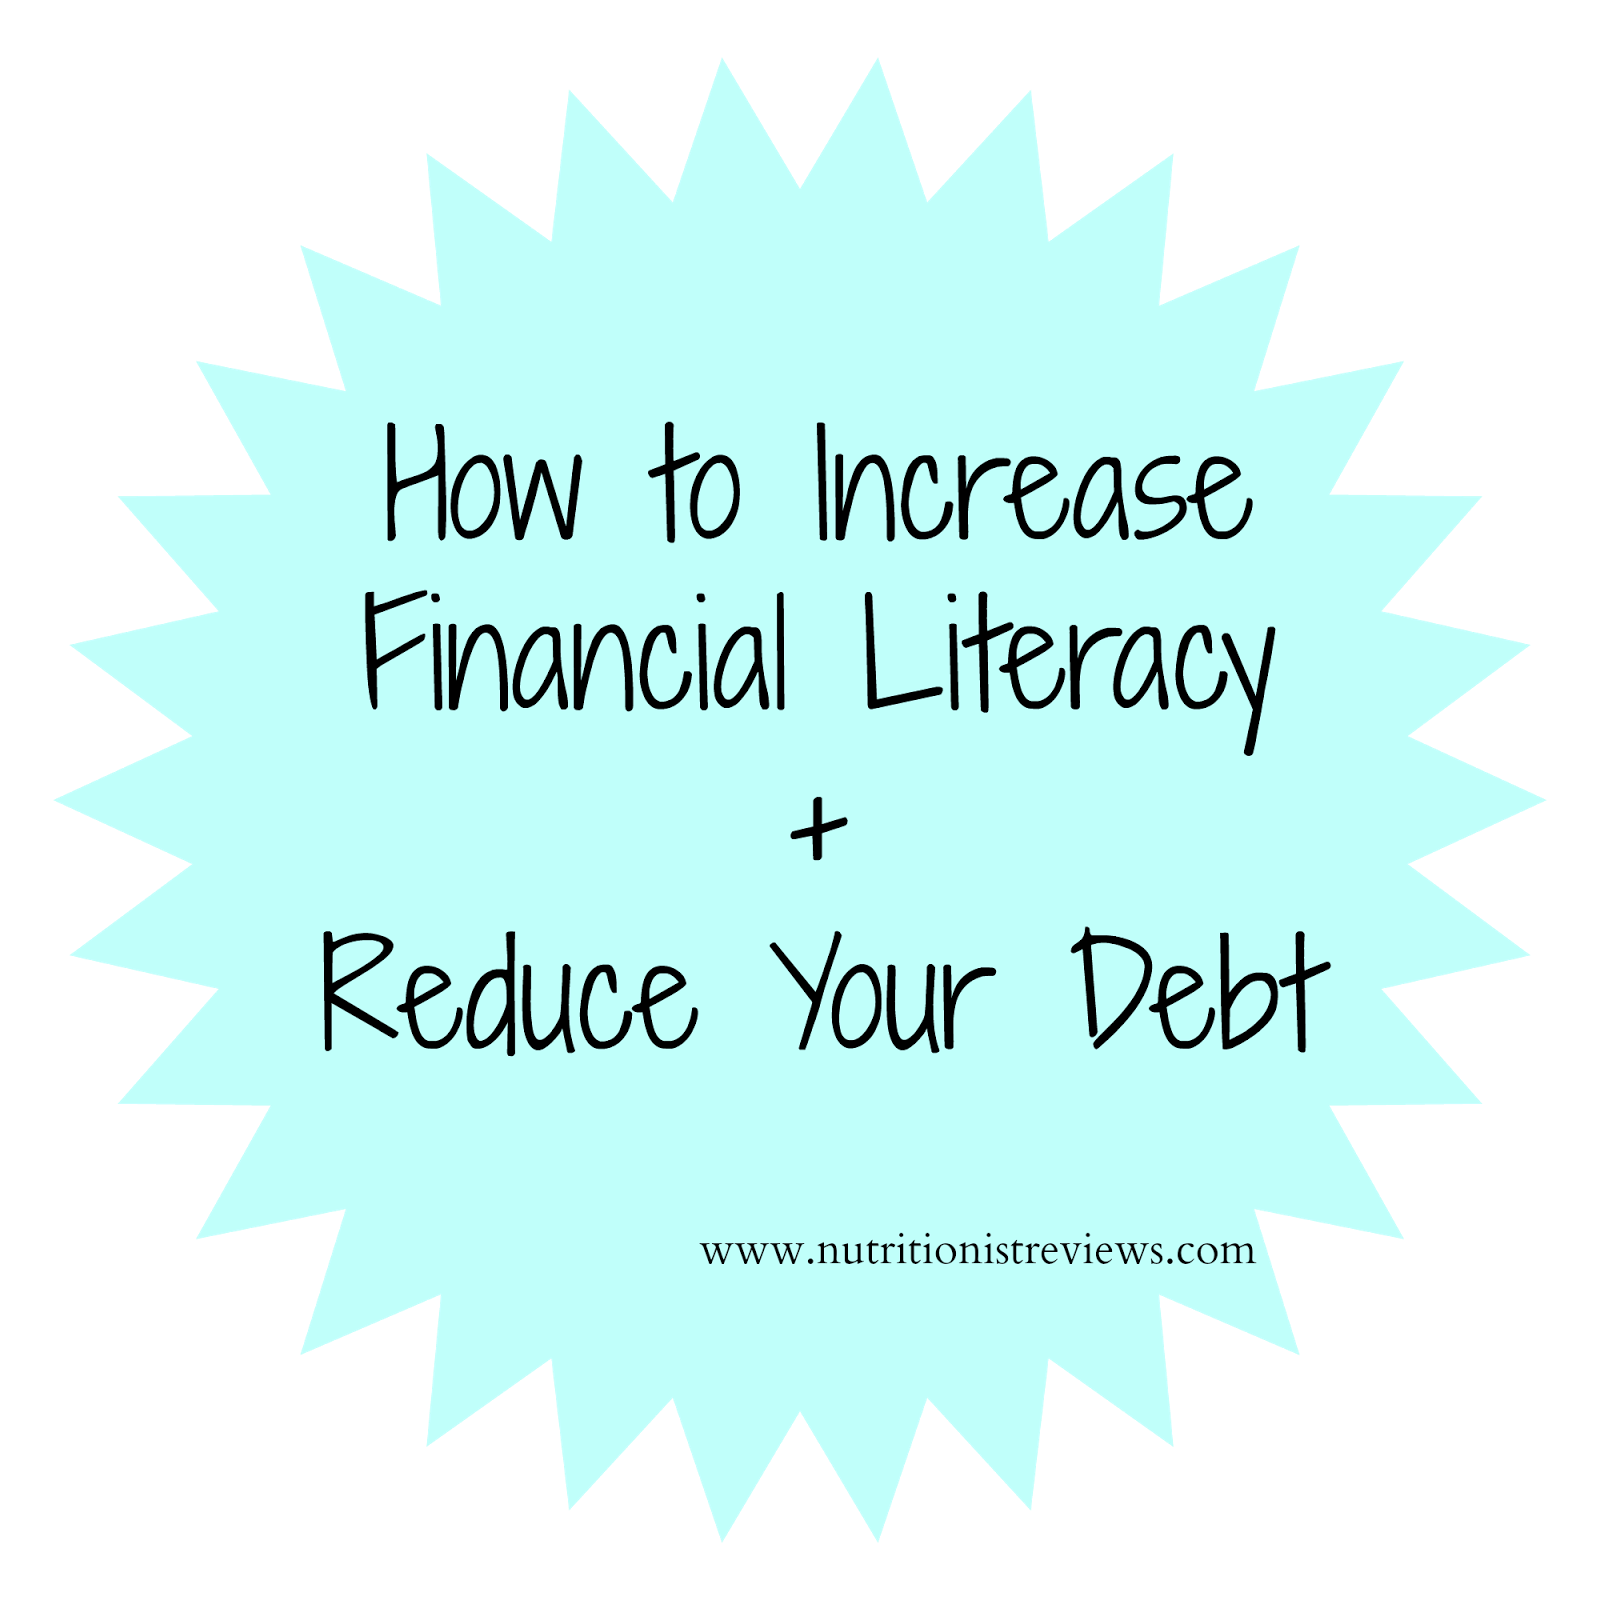 How to Increase Financial Literacy + Reduce Debt